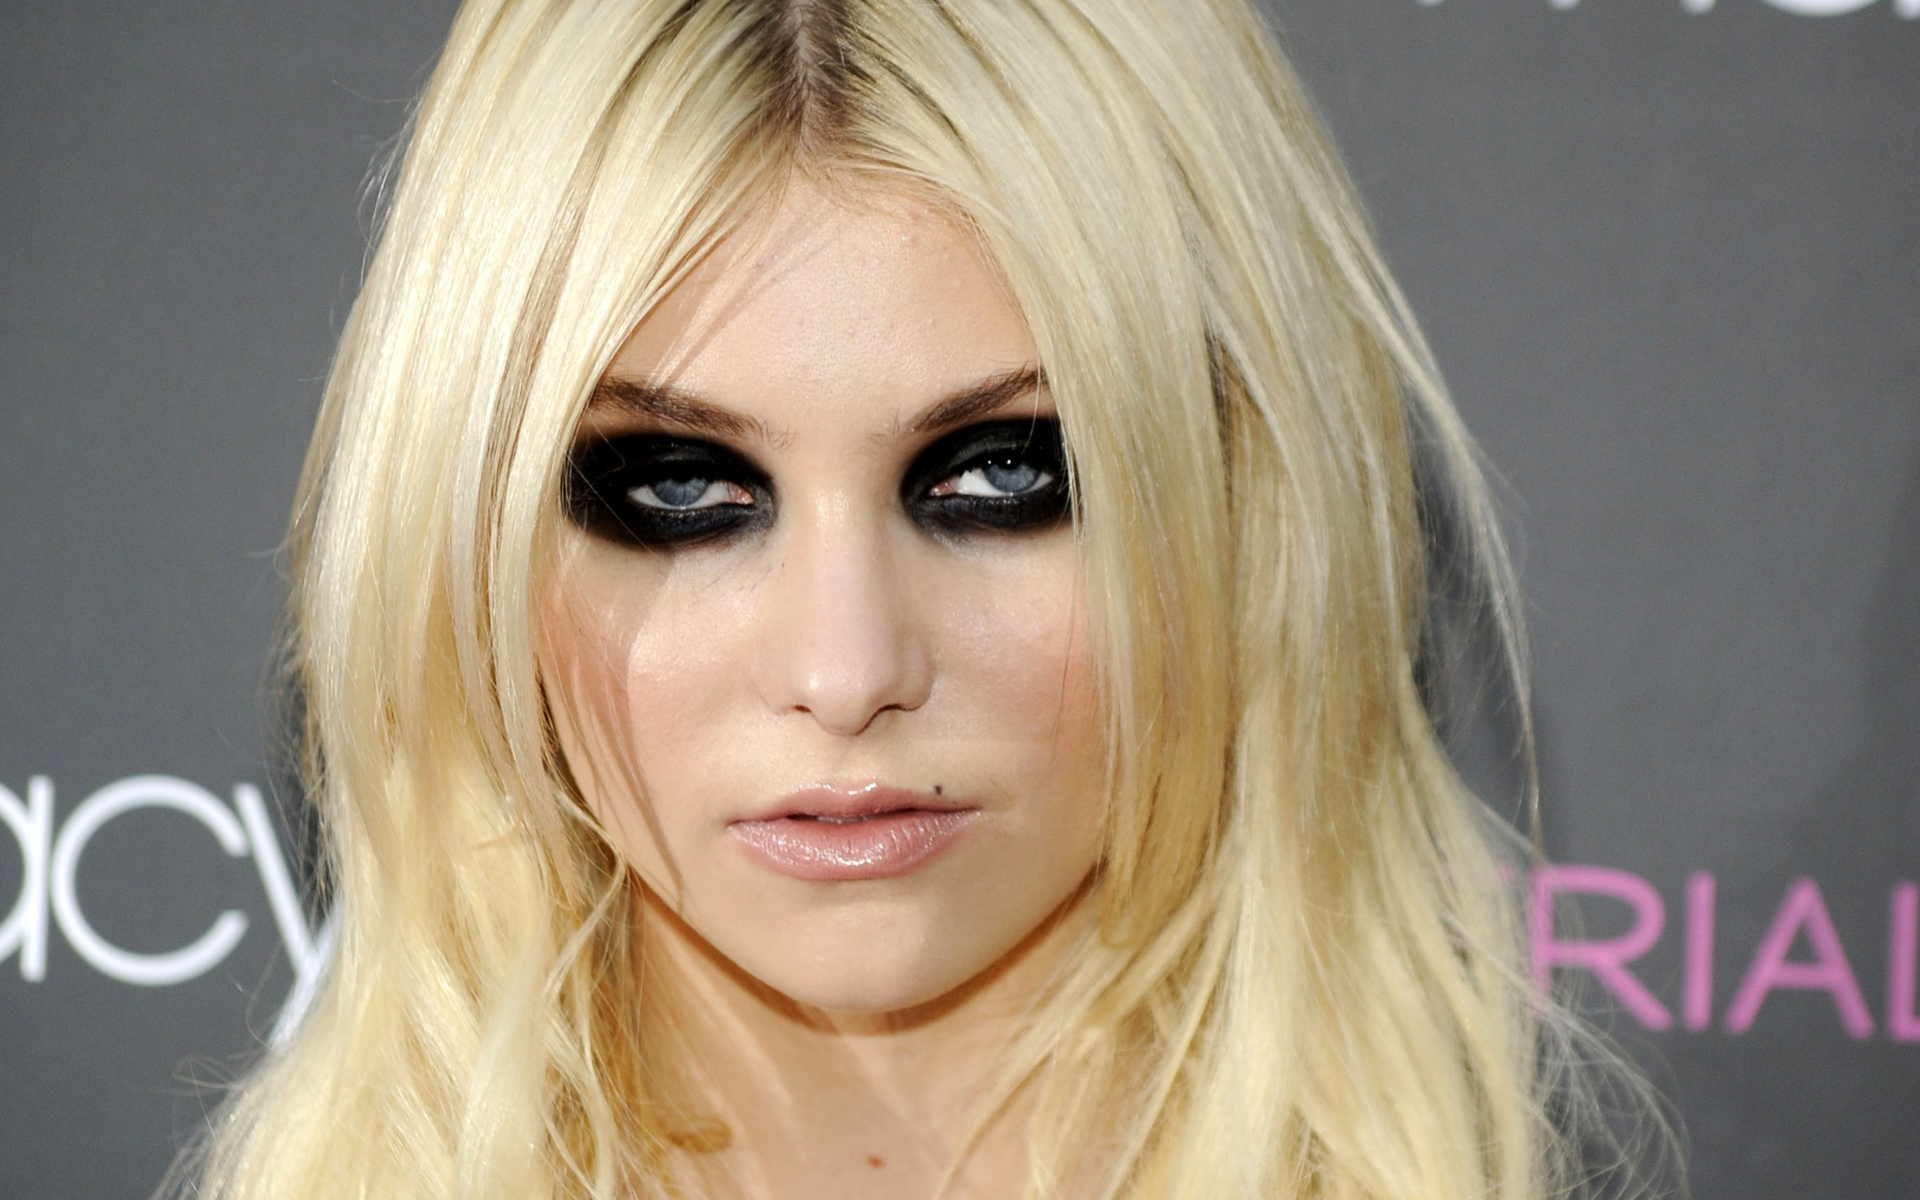 Taylor Momsen images Taylor Momsen HD wallpaper and background photos ...